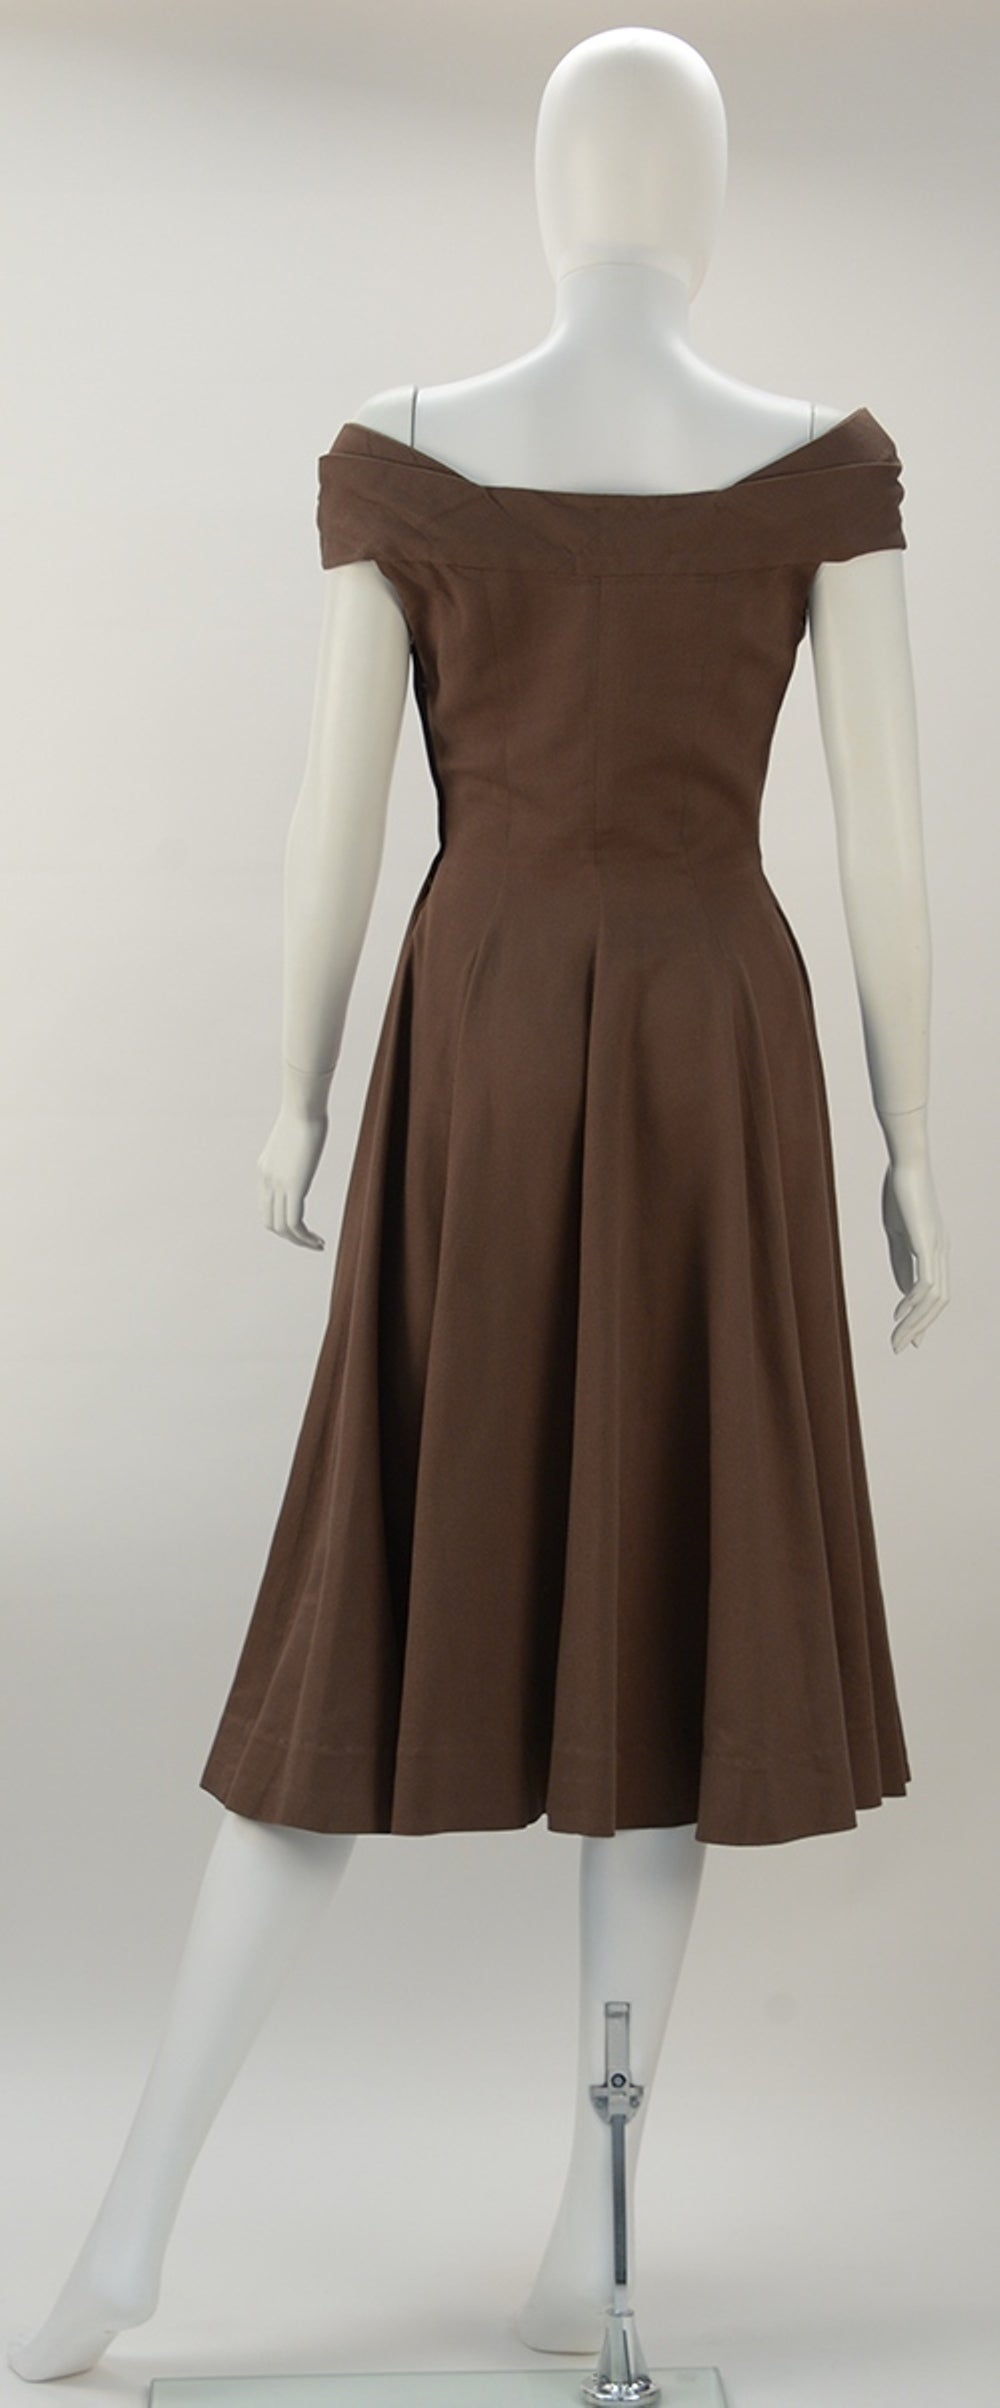 1930's Claire McCardell Brown Boatneck Dress 2